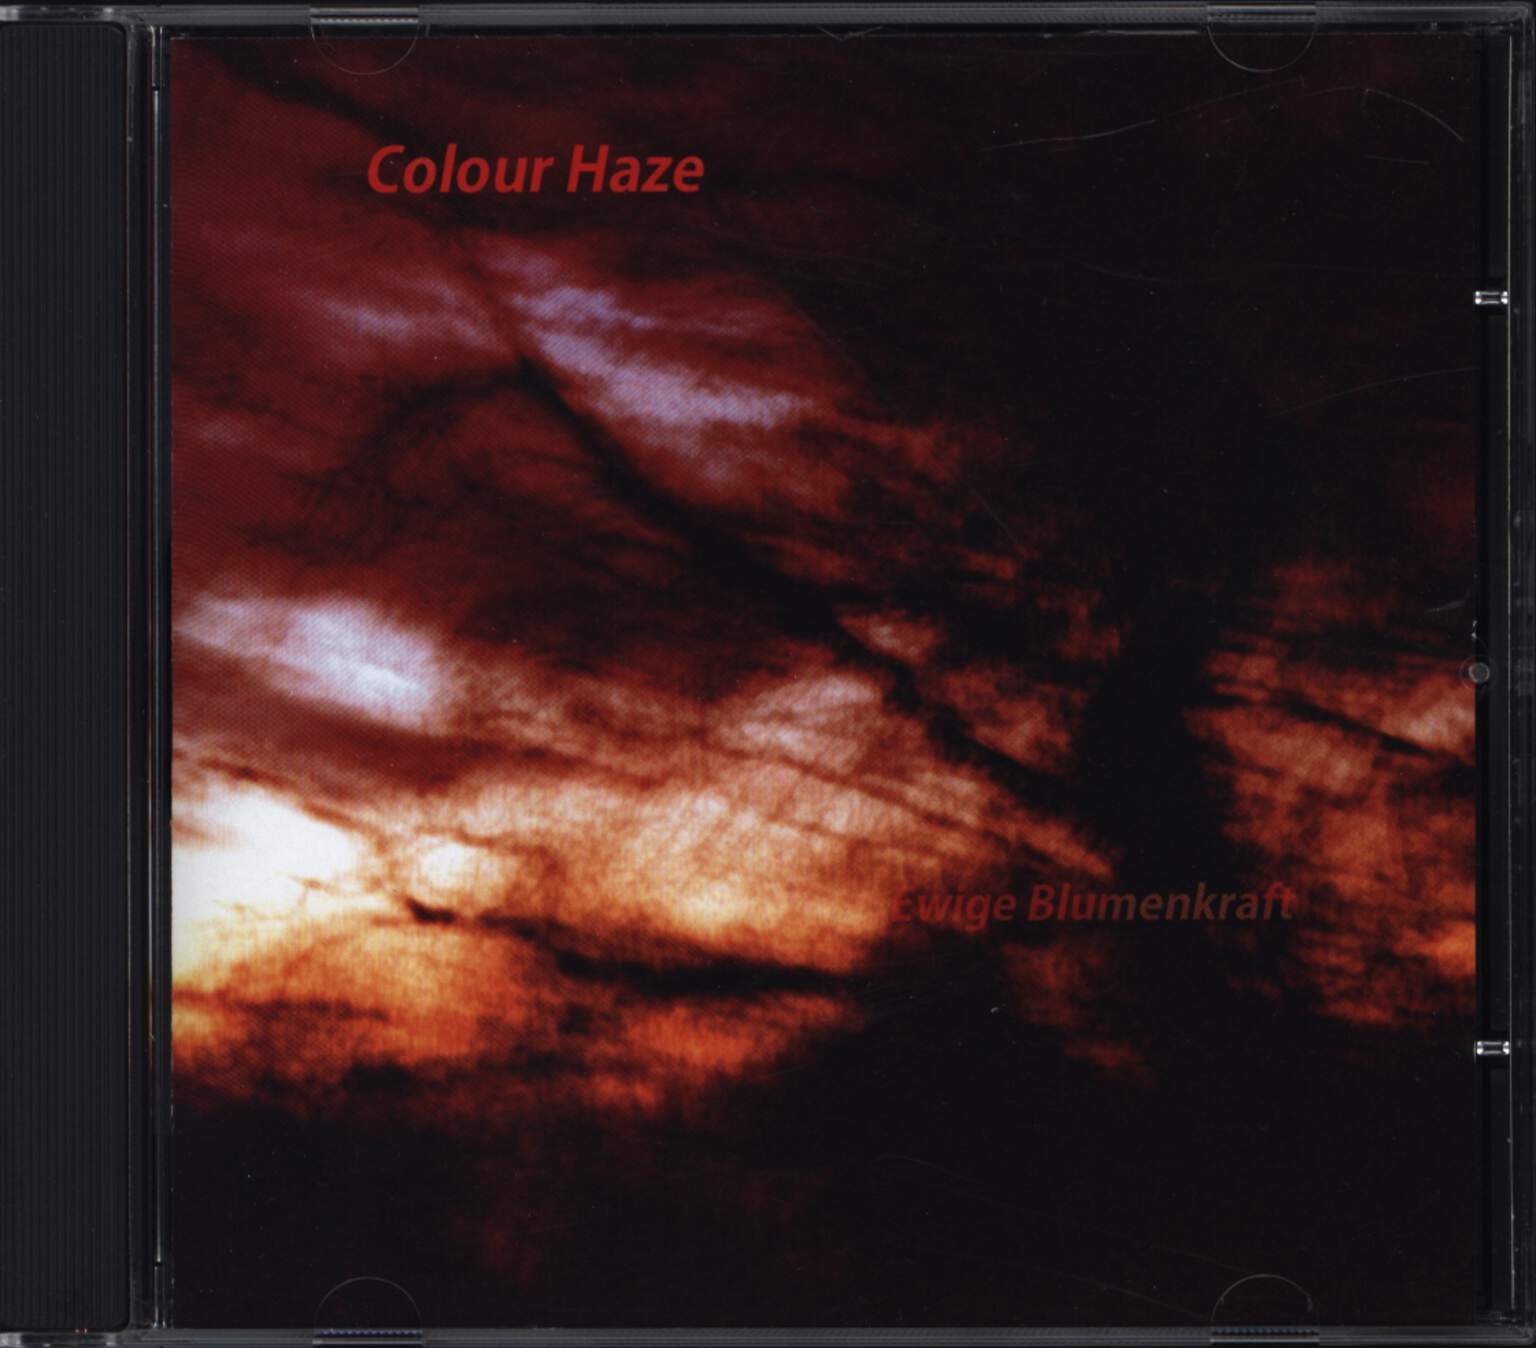 Colour Haze: Ewige Blumenkraft, CD